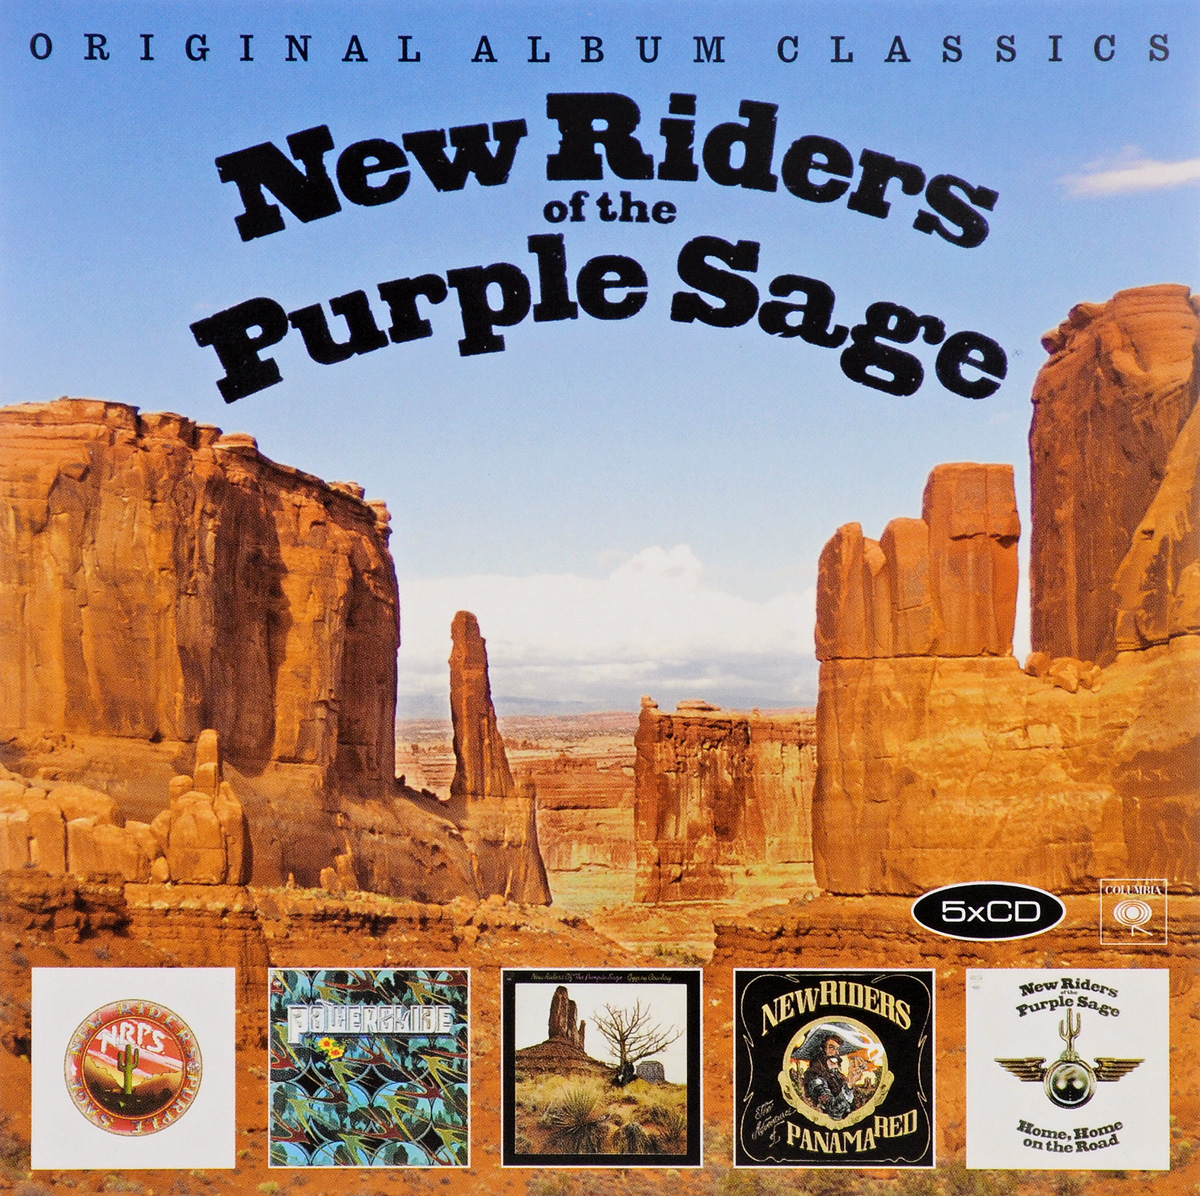 New Riders Of The Purple Sage New Riders Of The Purple Sage. Original Album Classics (New Riders Of The Purple Sage / Powerglide / Gypsy Cowboy / The Adventures Of Panama Red / Home, Home On The Road) сумка с полной запечаткой printio ковбой